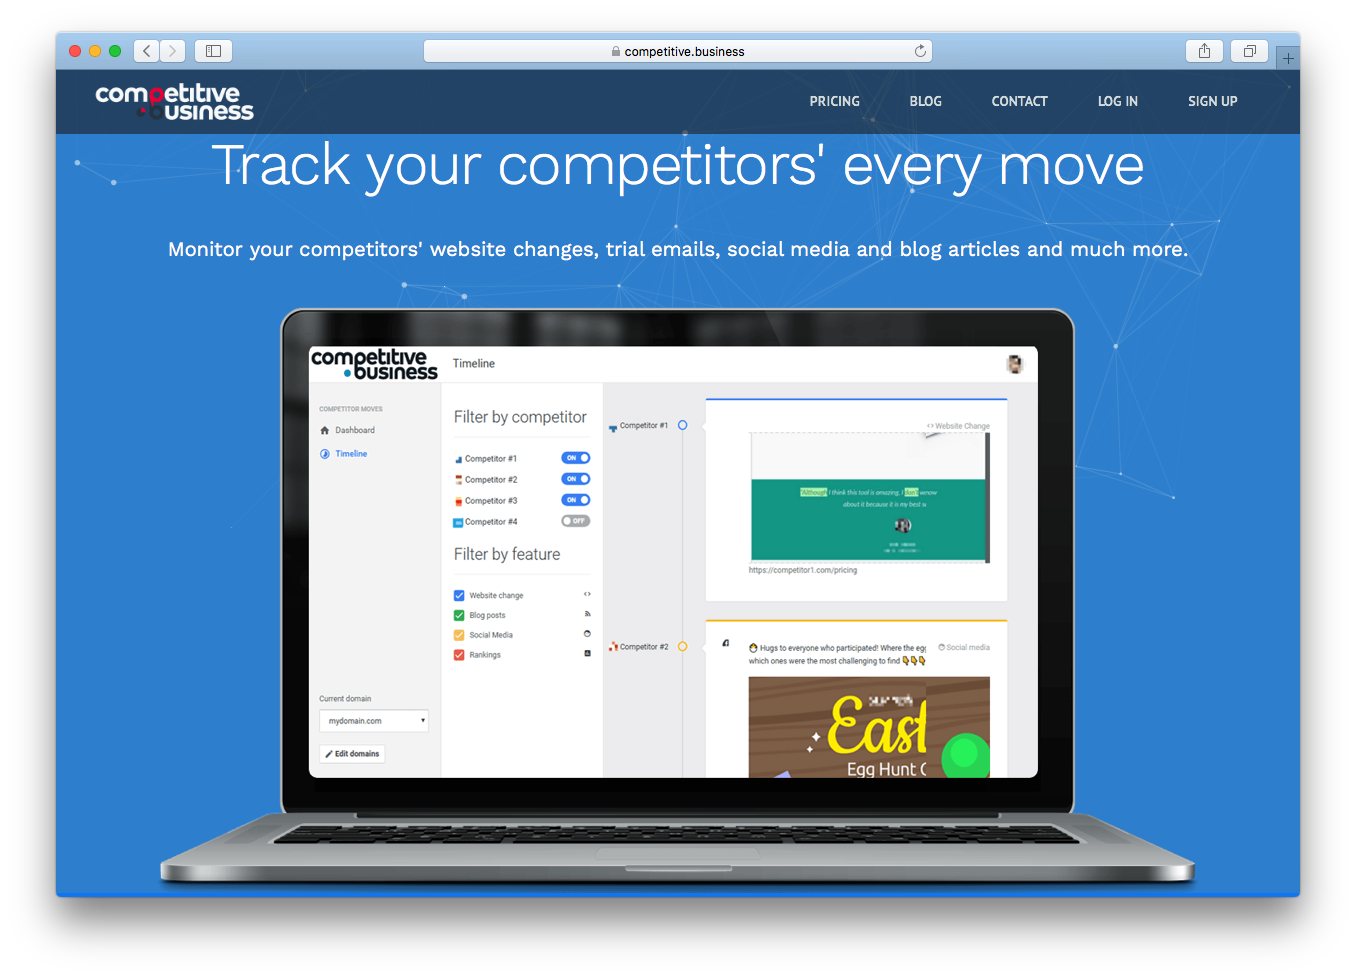 Competitive Business screenshot of homepage track competitors